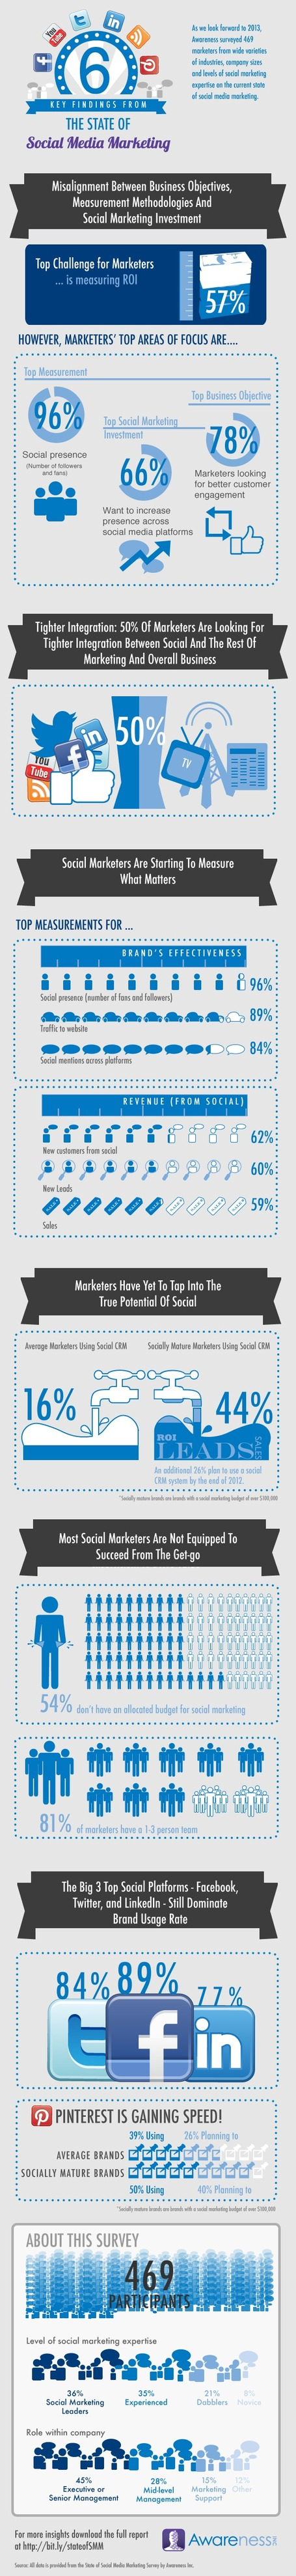 State of Social Marketing Survey [Infographic] | Best Infographics of all time | Scoop.it